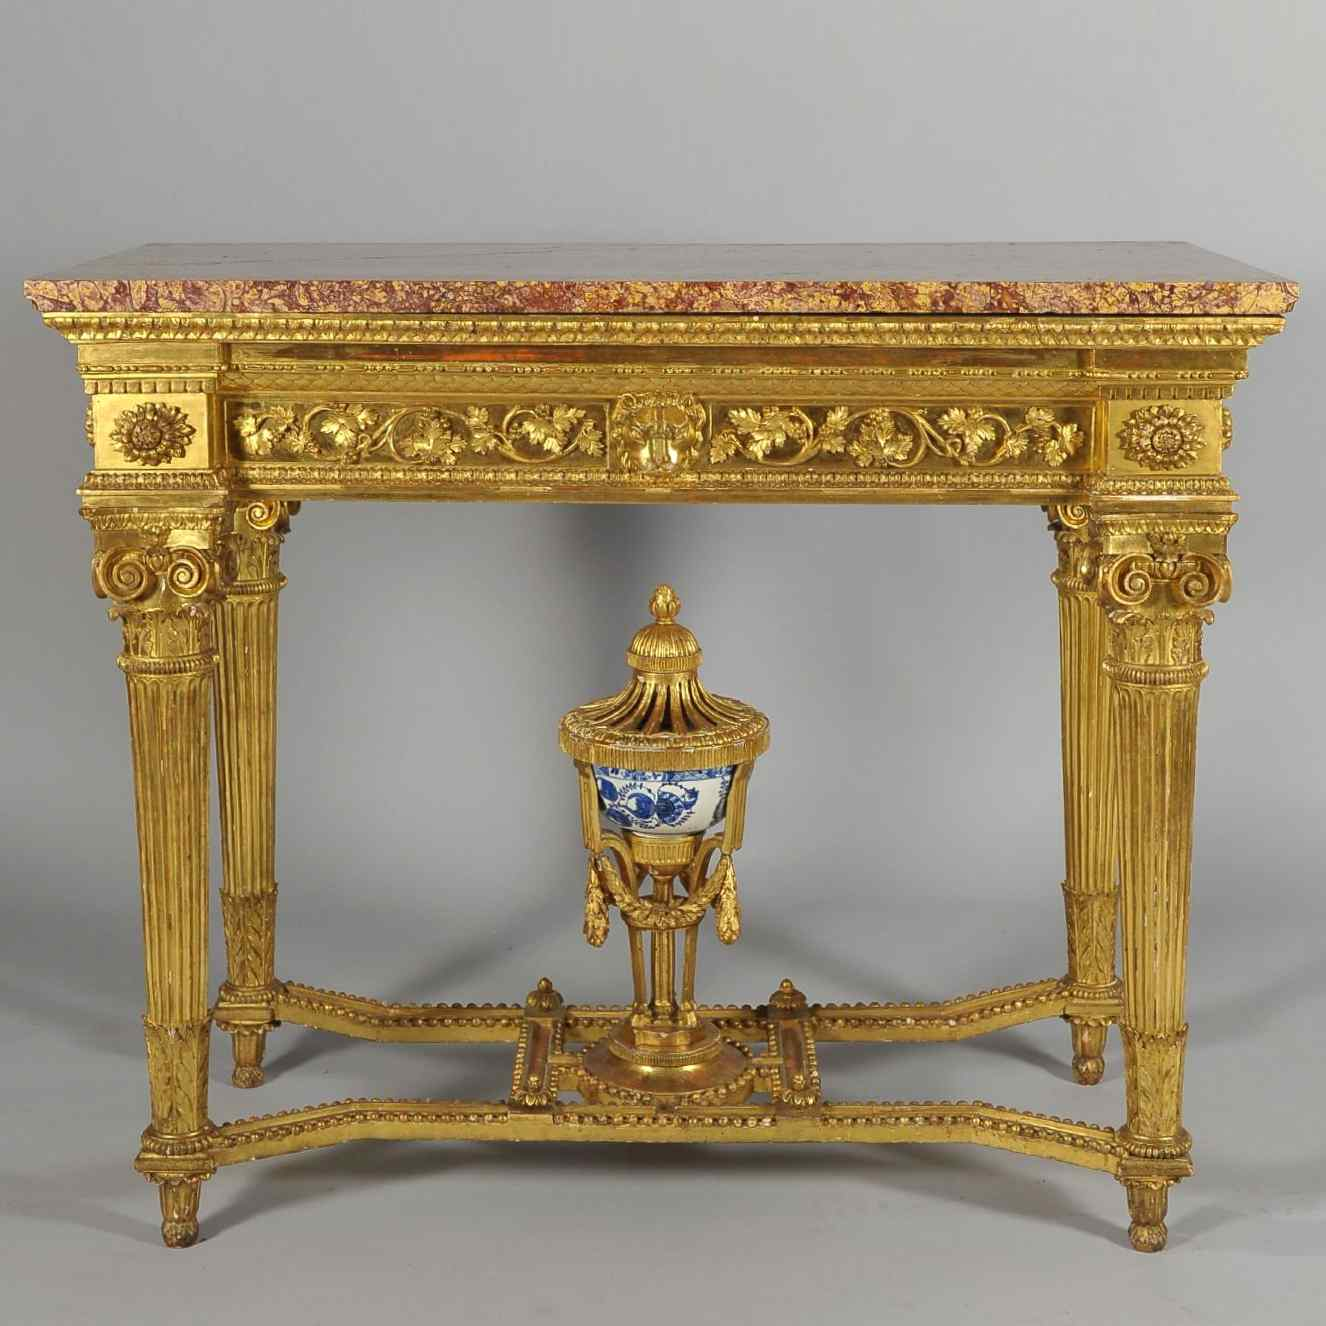 A fine late 18th century carved and gilded wood console